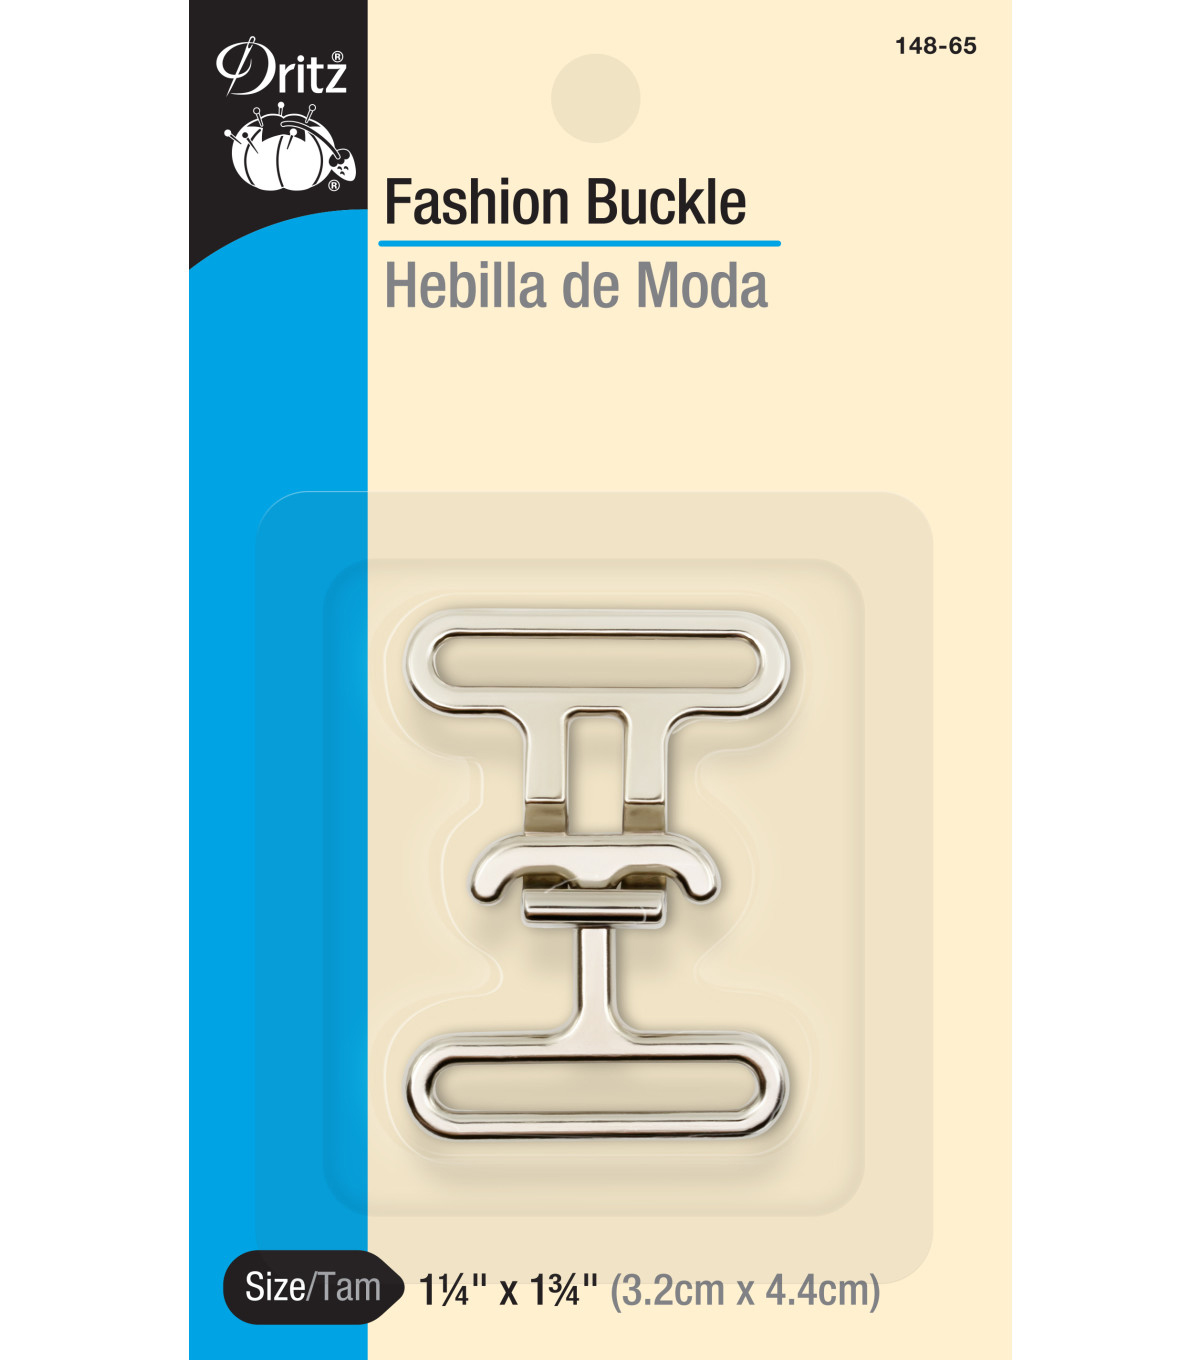 Dritz 1.75\u0022x1.75\u0022 Fashion Toggle Buckle Nickel